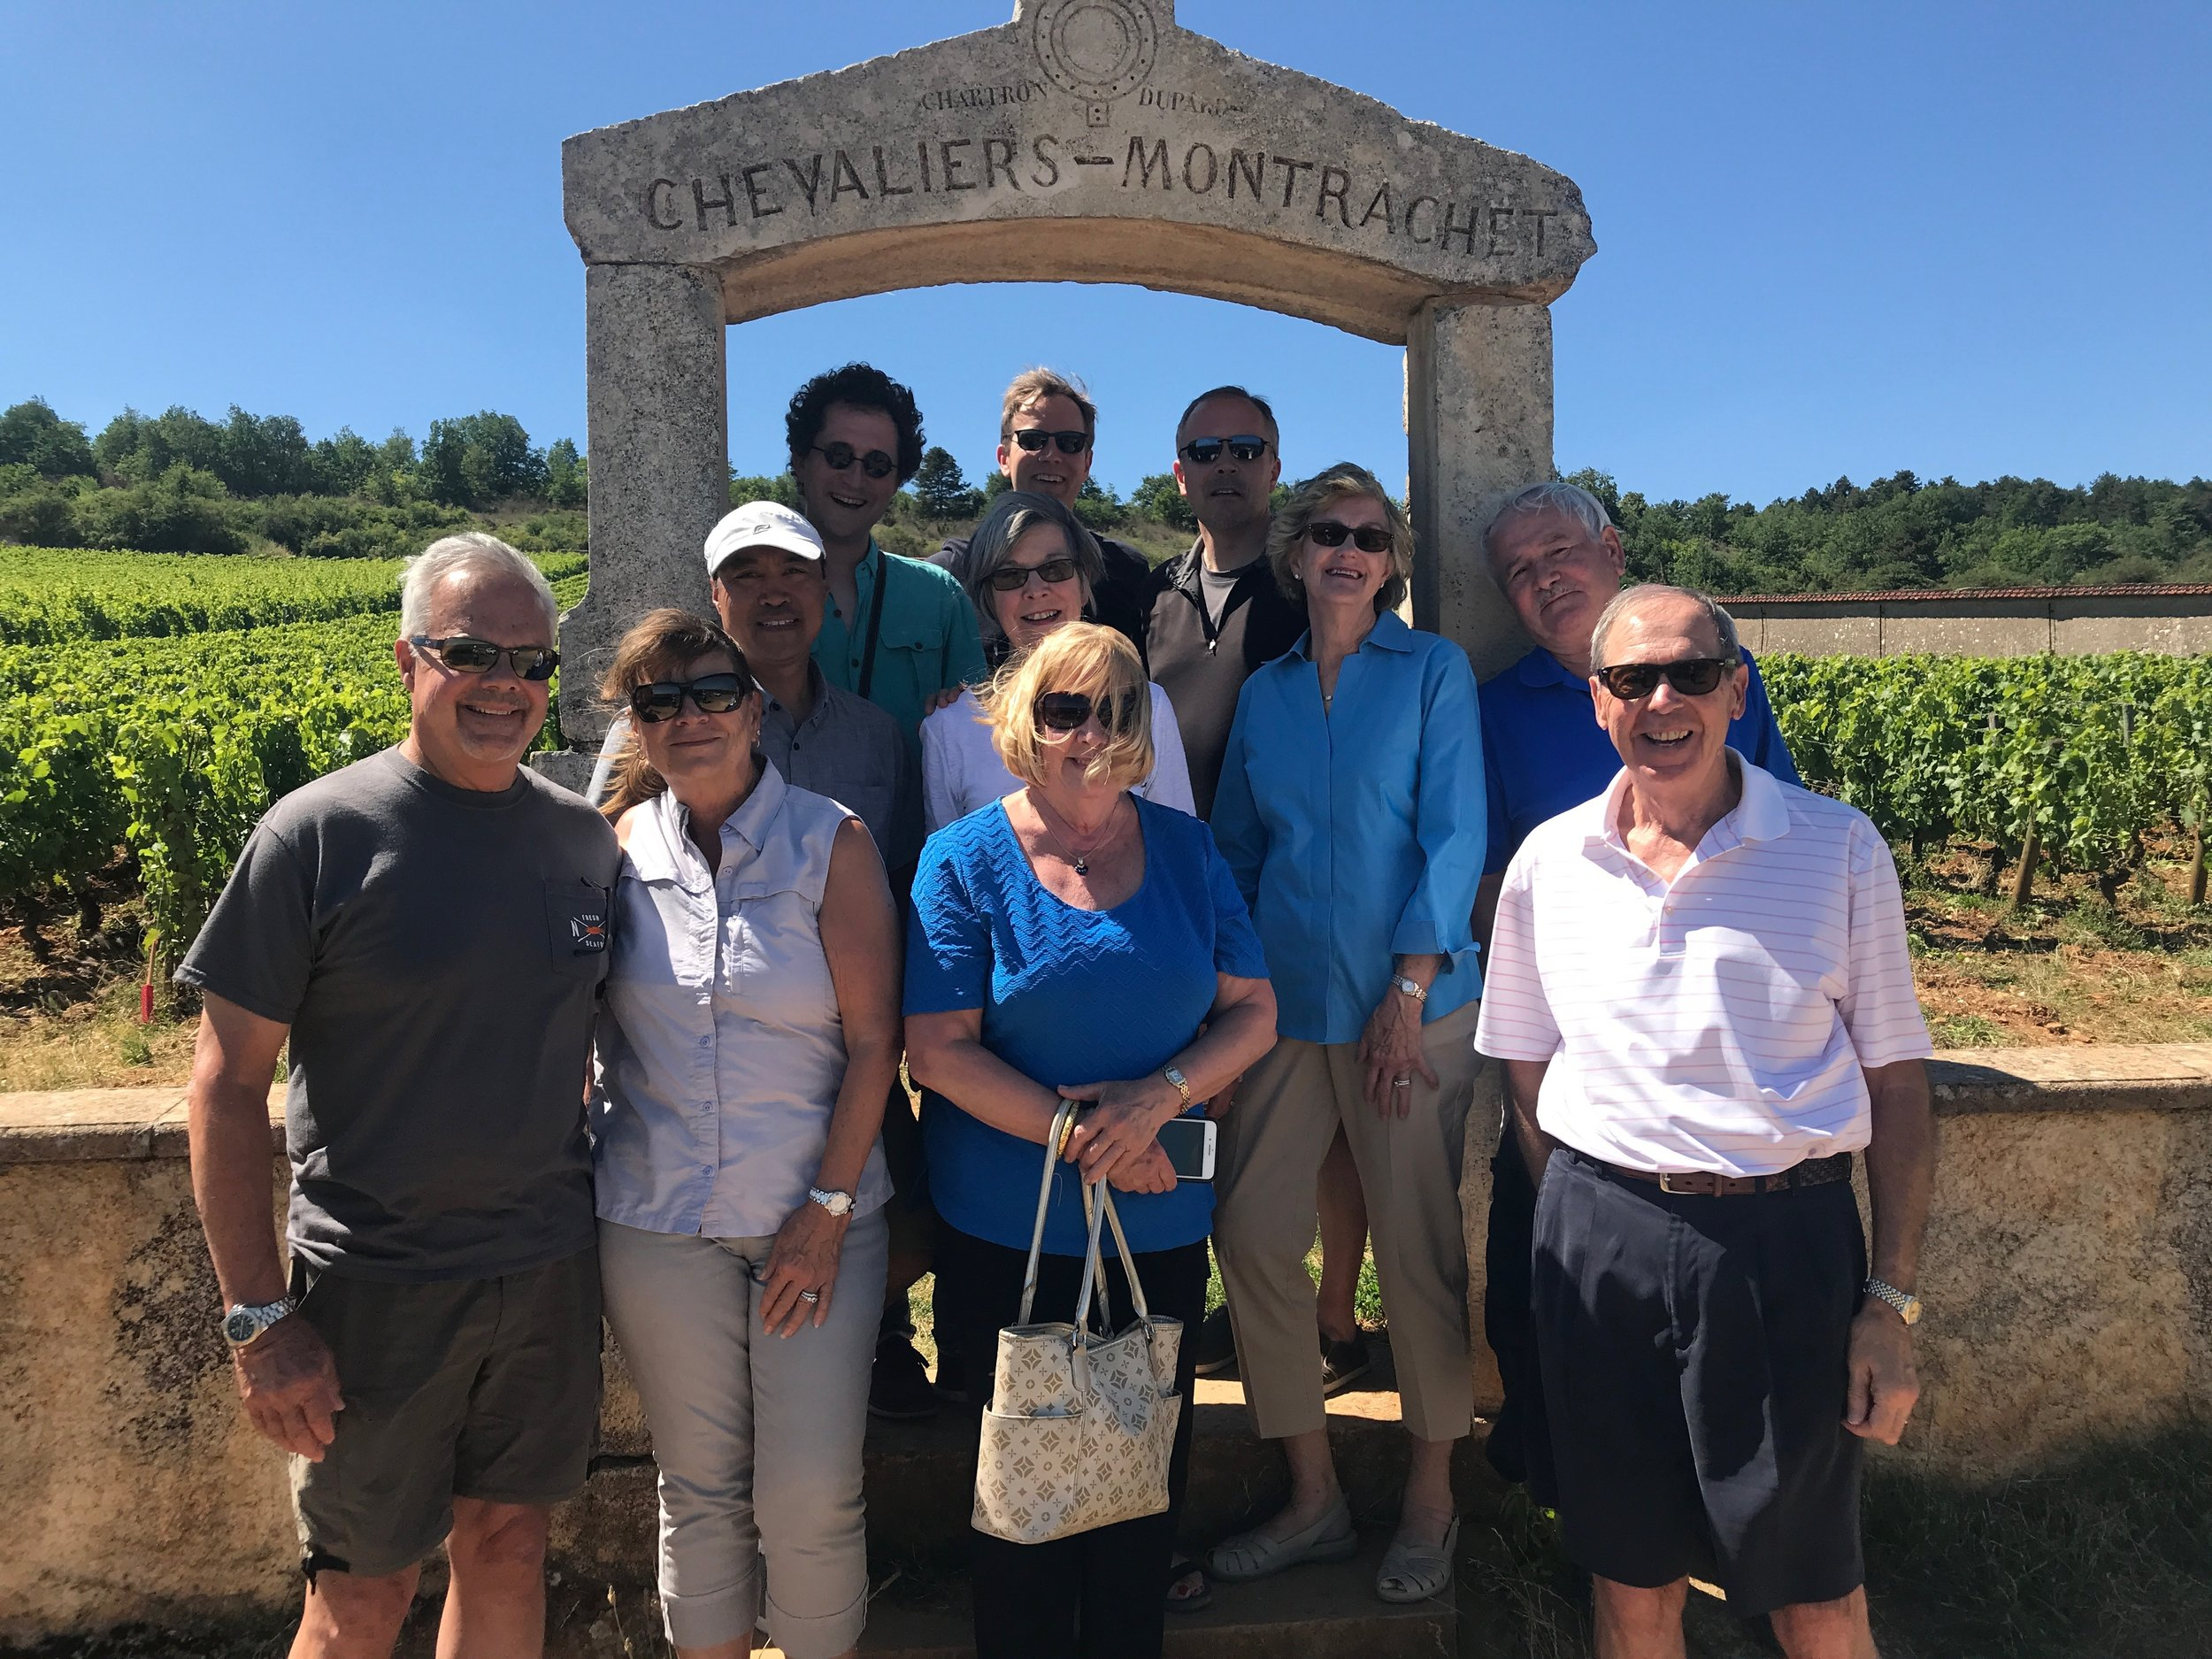 Our annual group shot in the arch at  Chevaliers-Montrachet